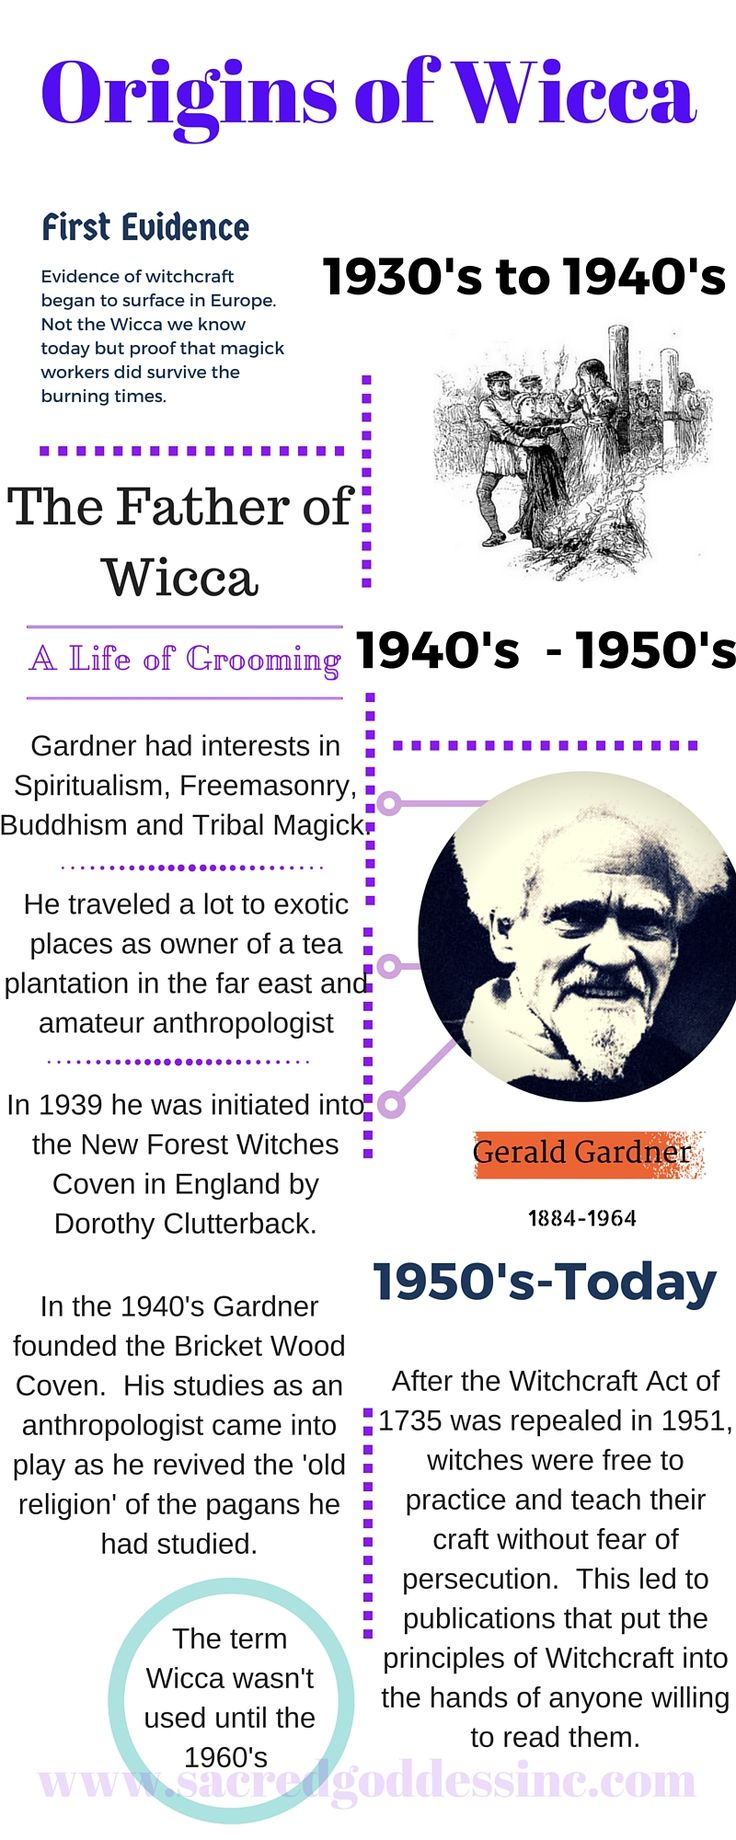 Wicca For Beginners - Origins of Wicca   Follow us for more great infographs.  Click to visit our website!